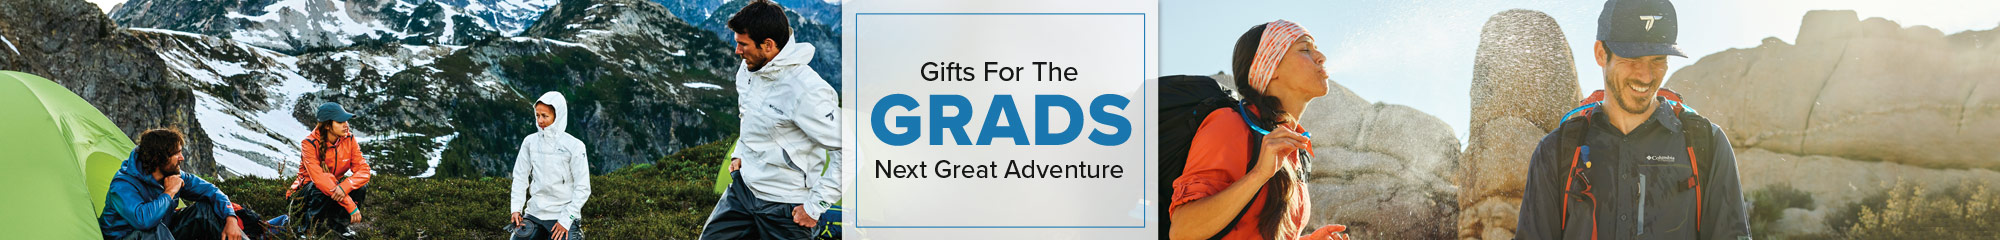 Grads gift guide for the next adventure